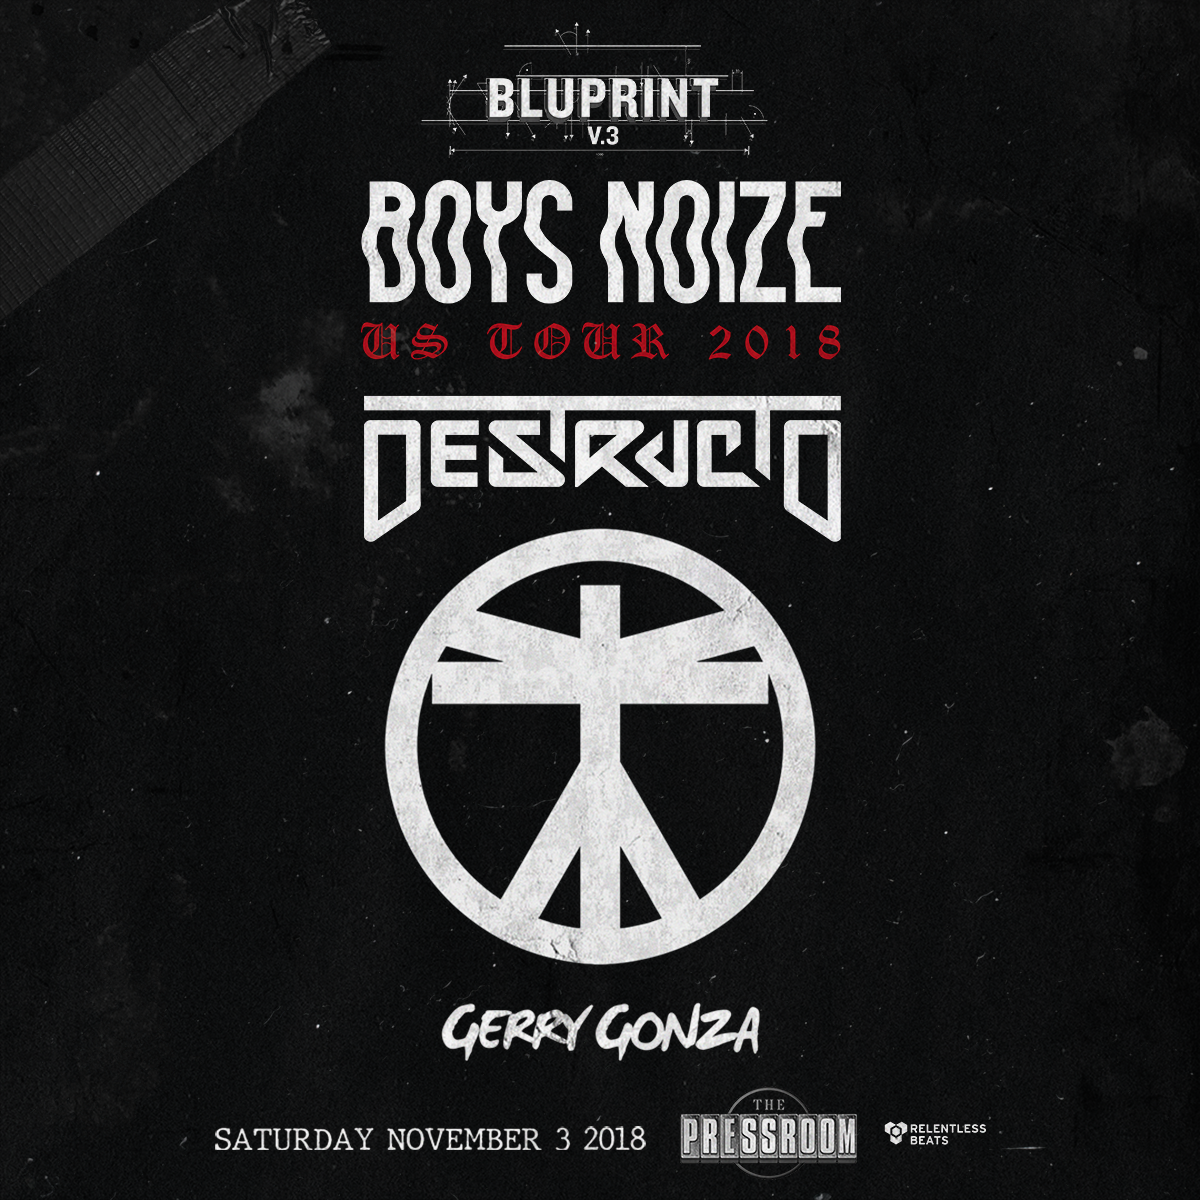 Flyer for Boys Noize, Destructo & Gerry Gonza